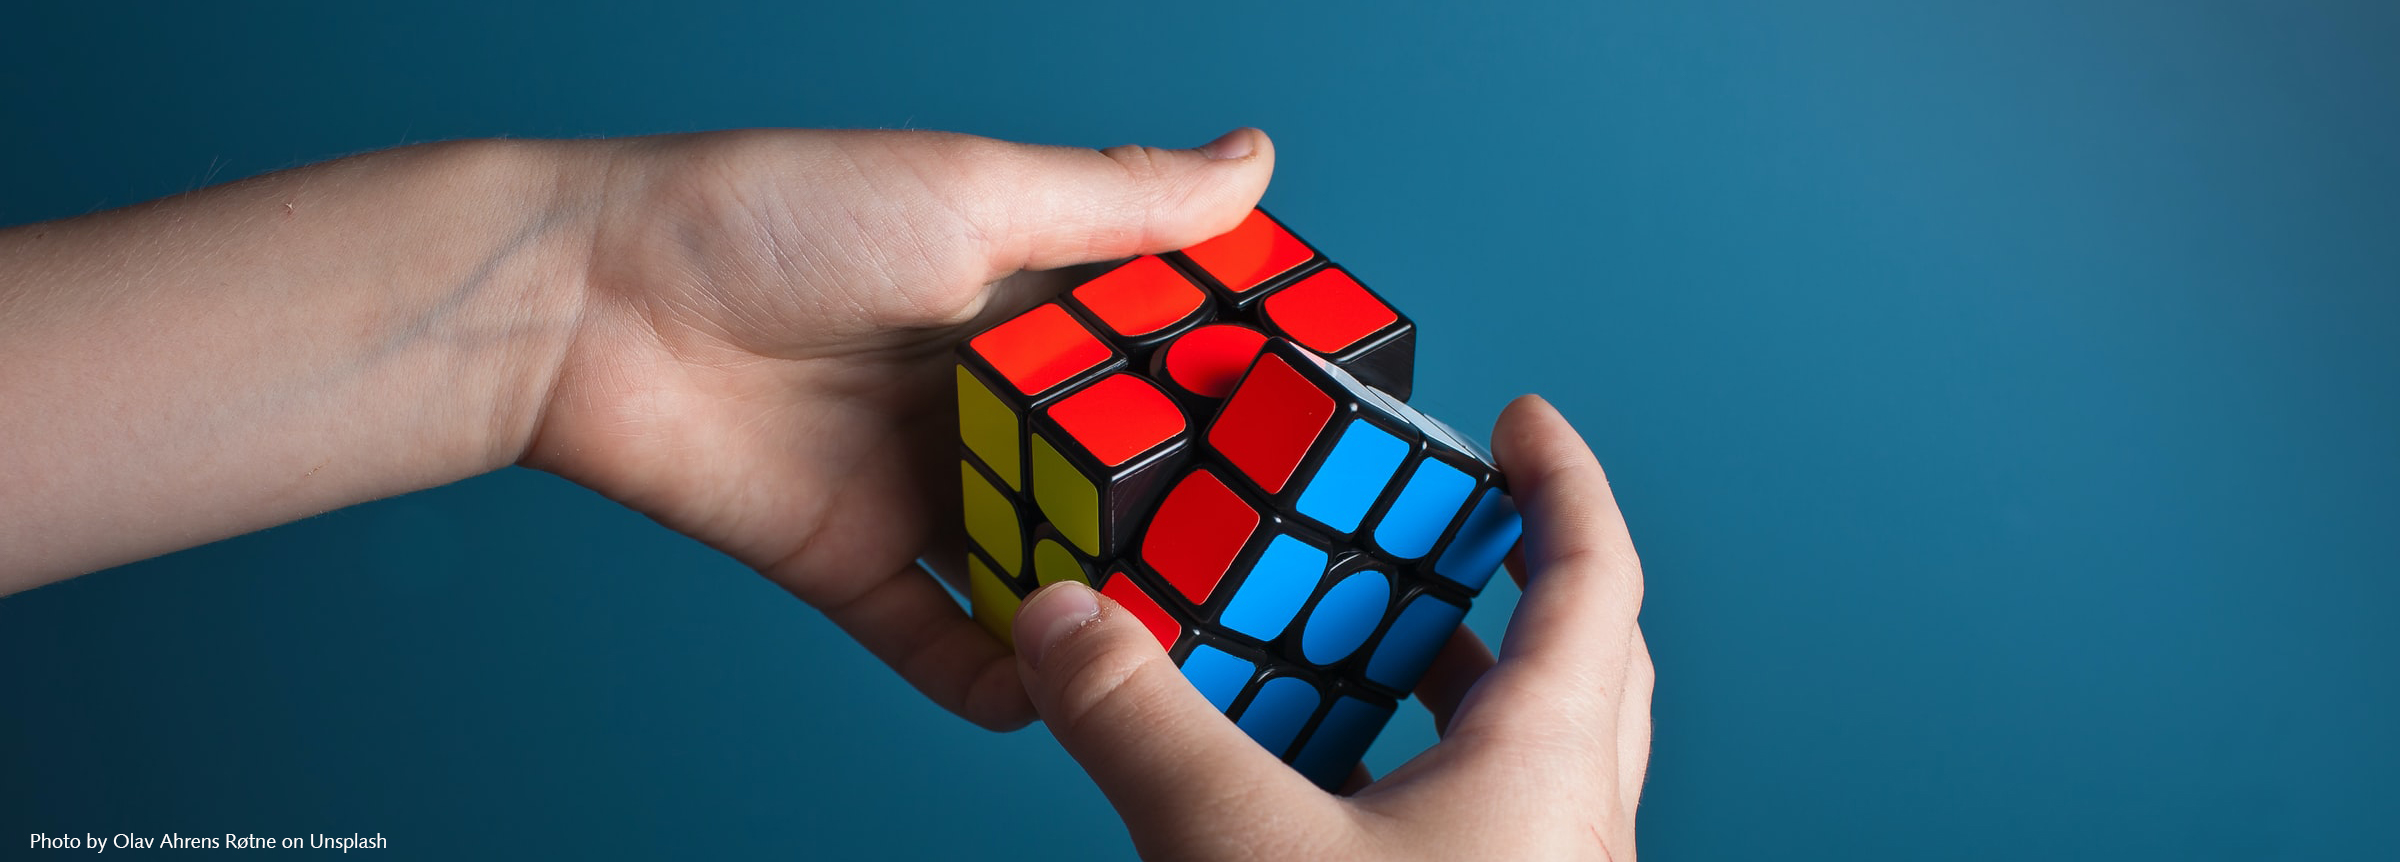 person playing magic rubiks cube